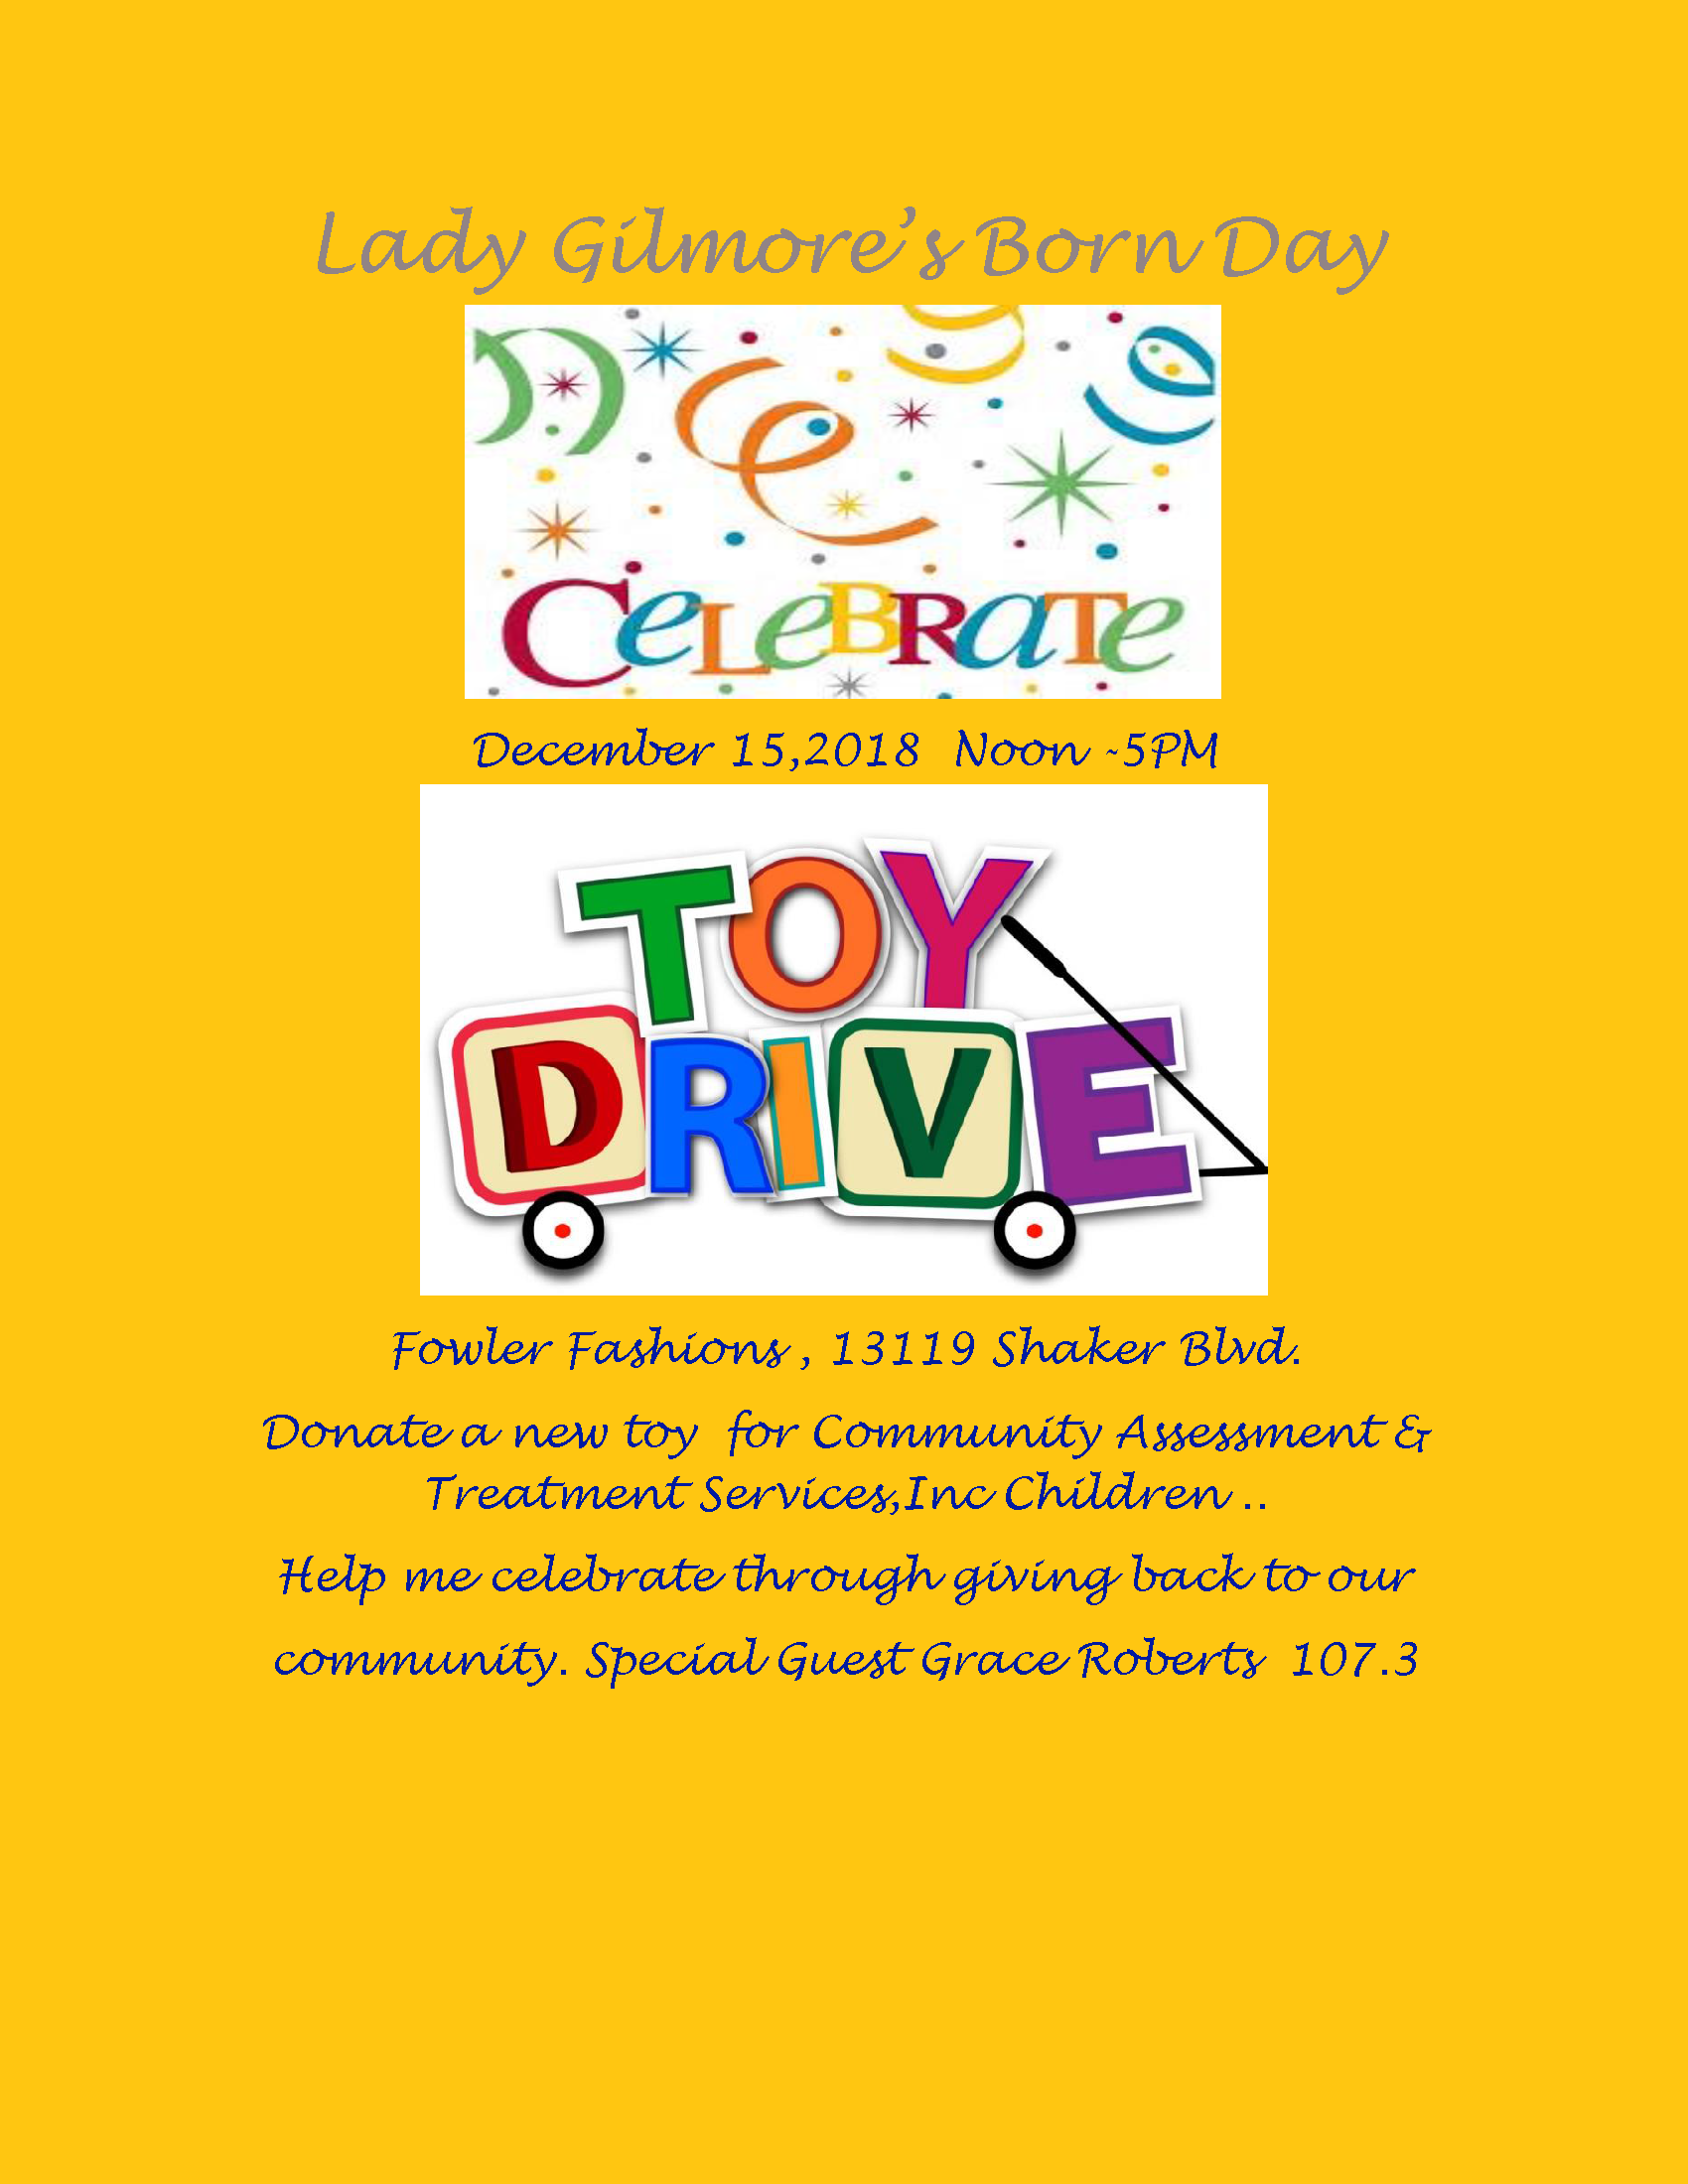 Lady Gilmore's Born Day Toy Drive